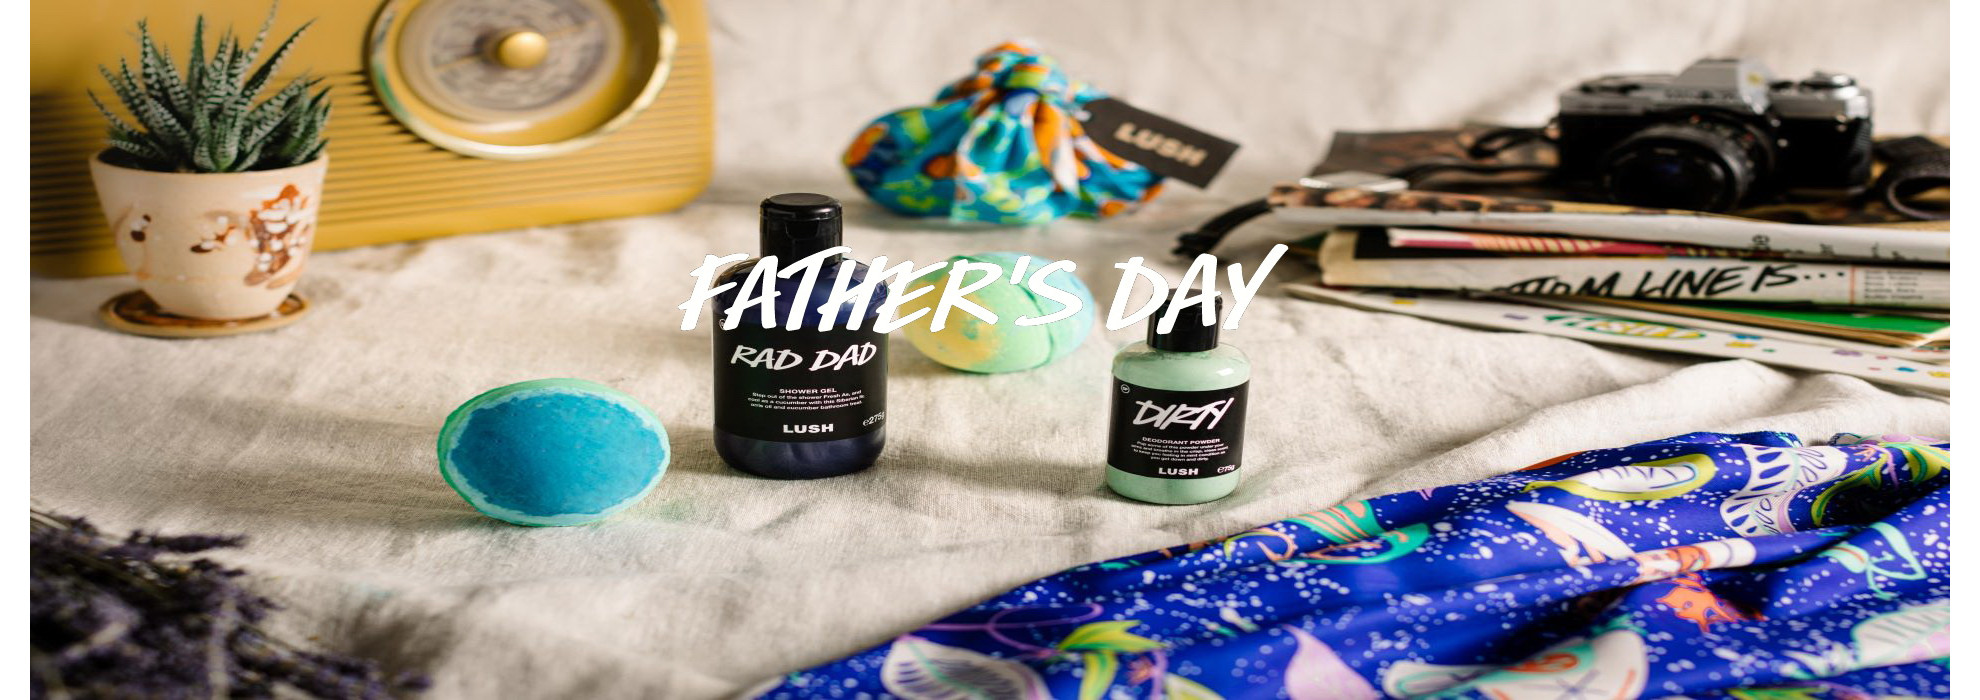 Category Father's Day